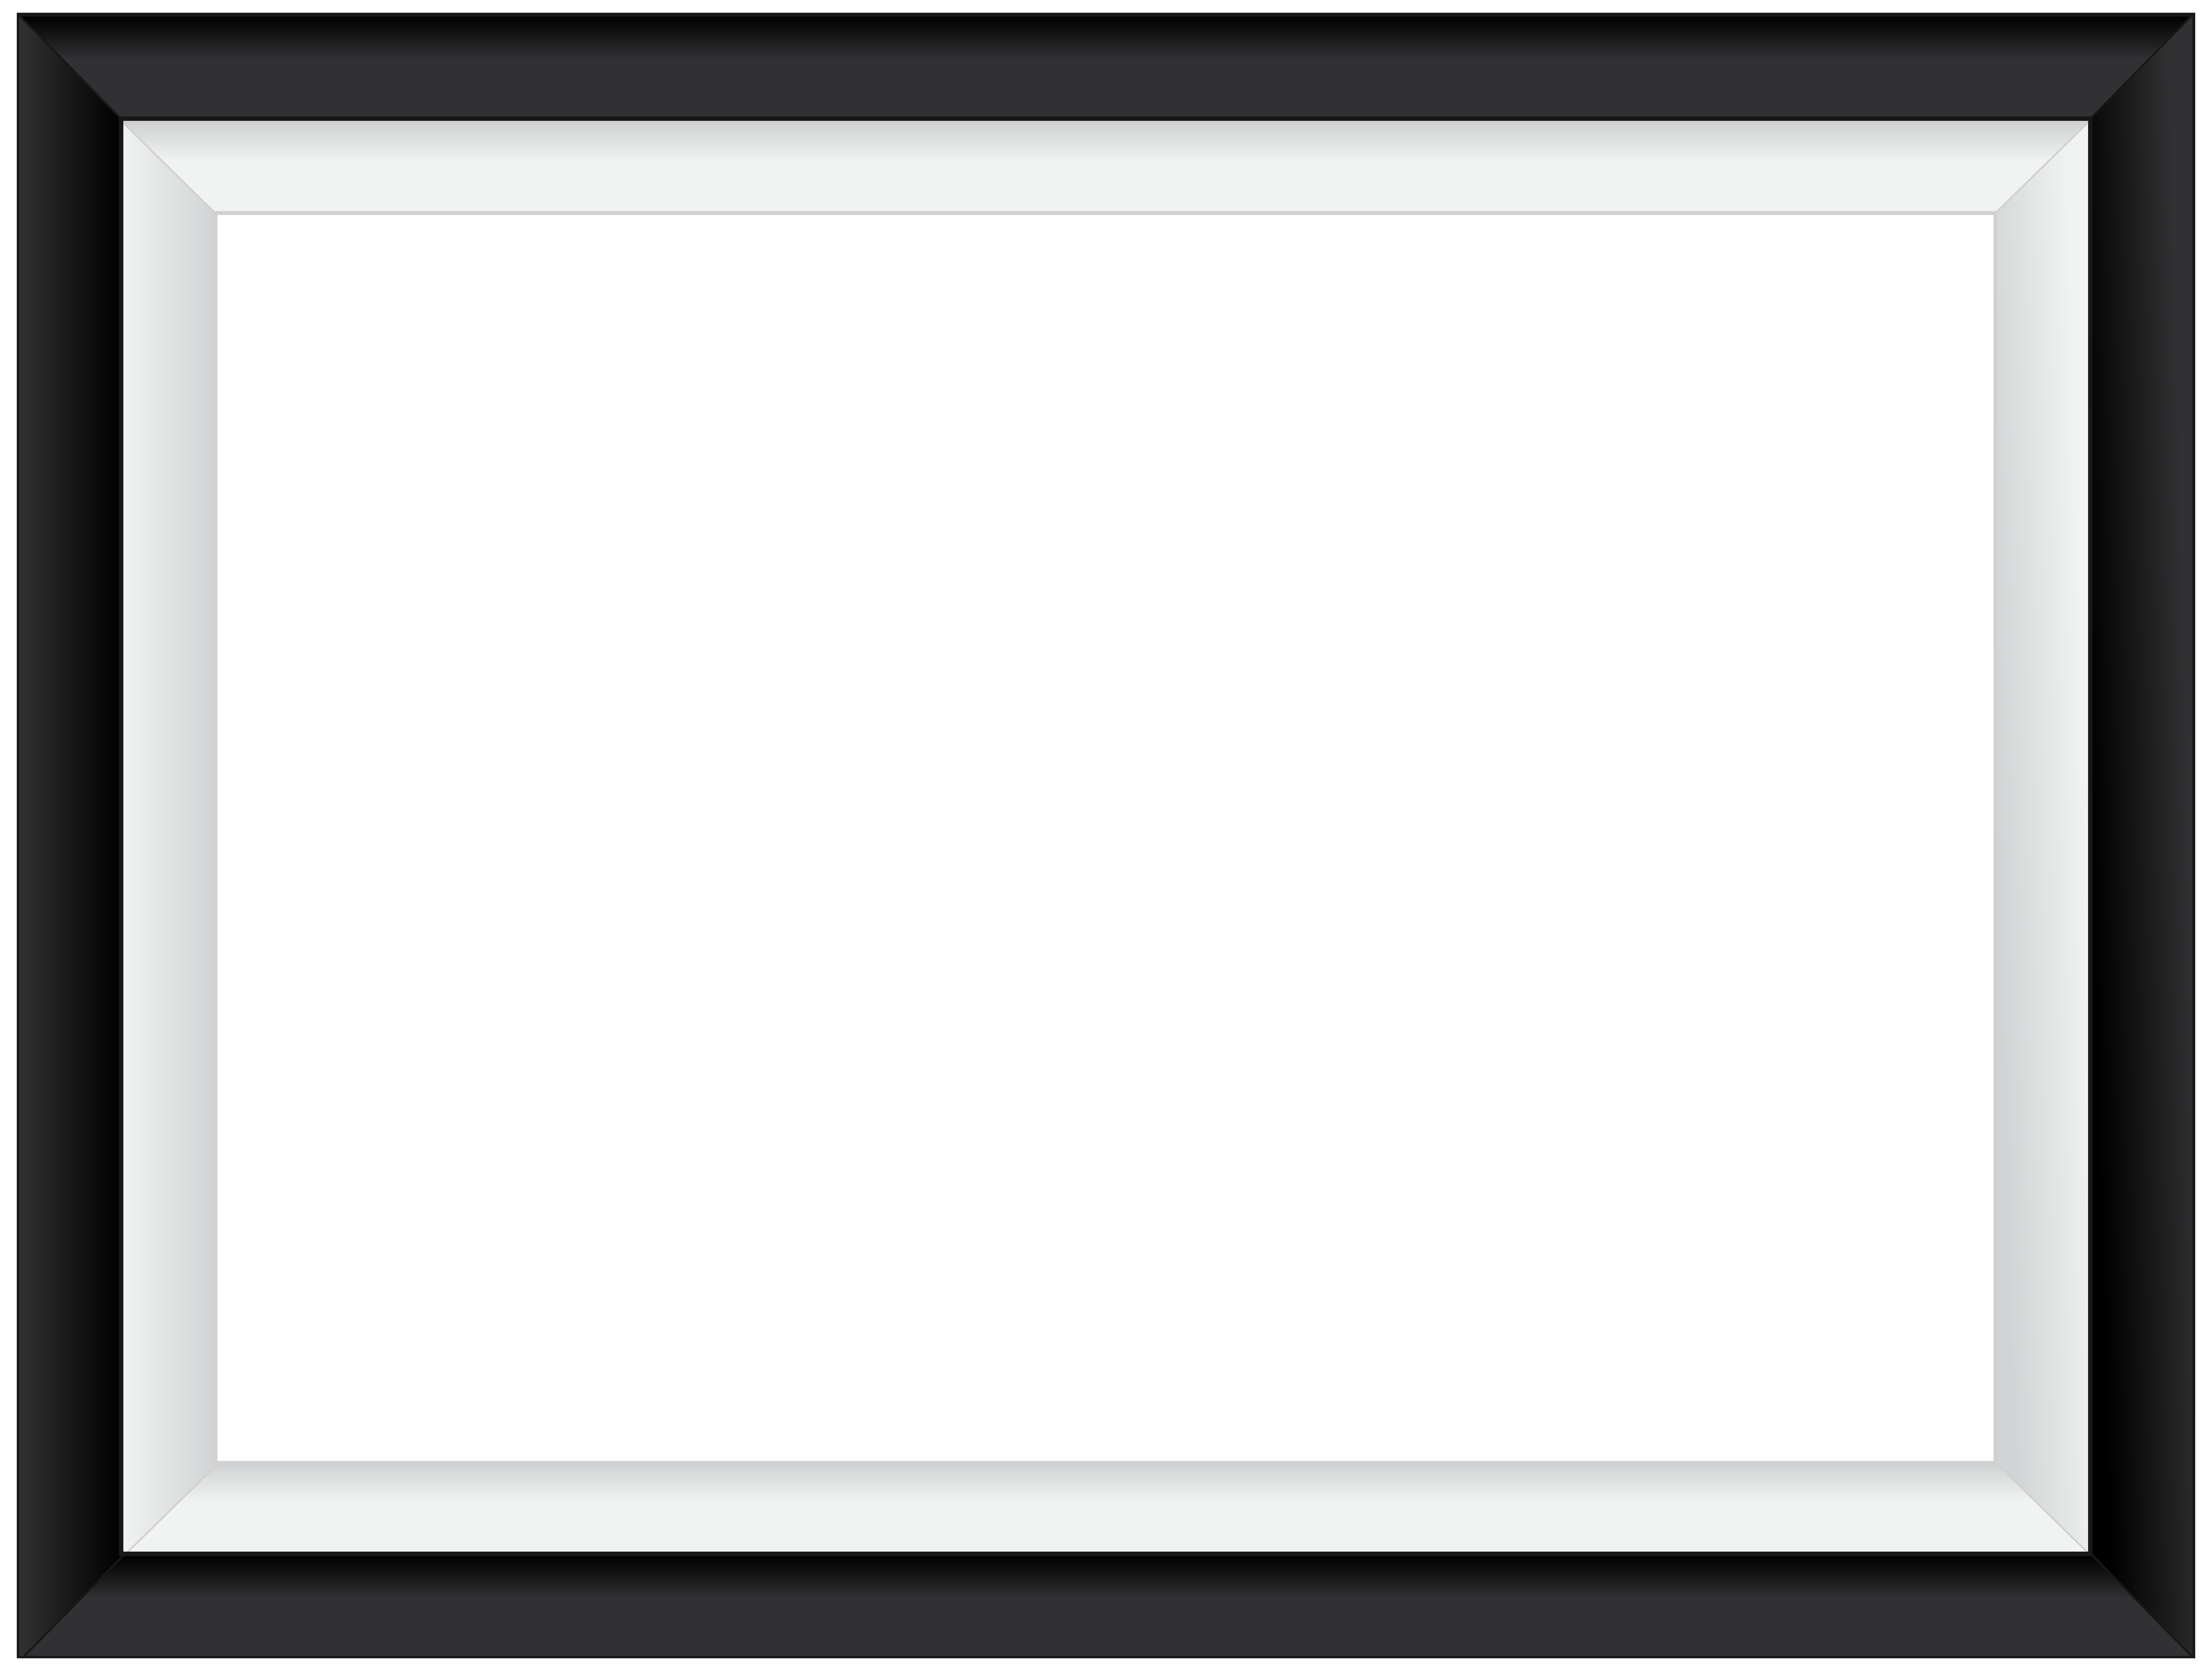 white border png transparency